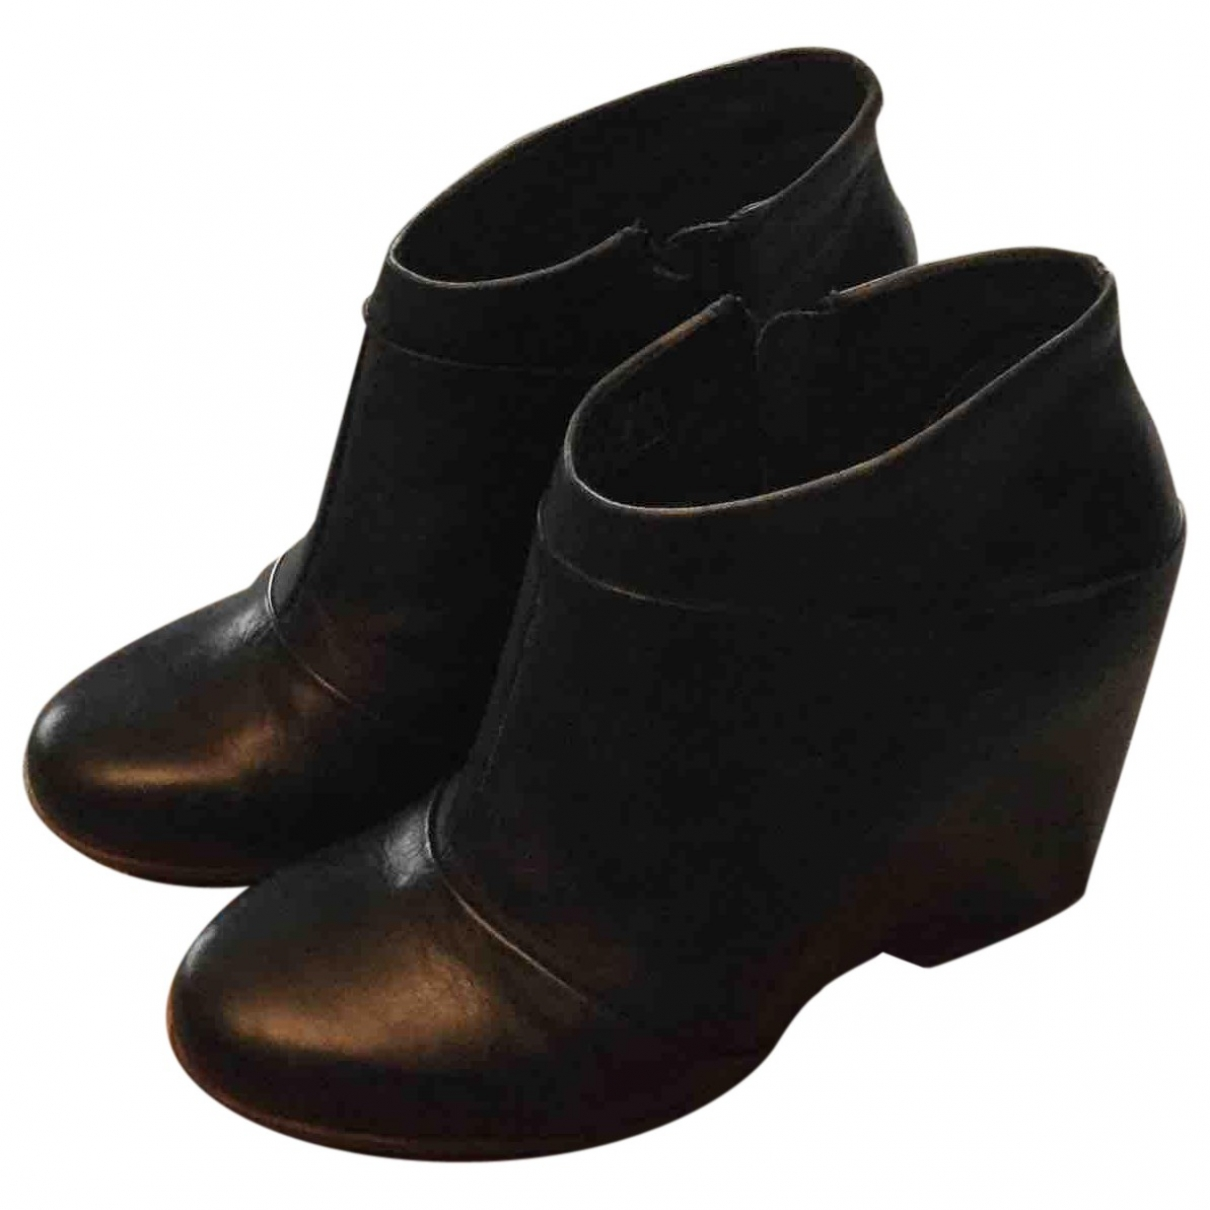 Ugg \N Black Leather Ankle boots for Women 39 EU